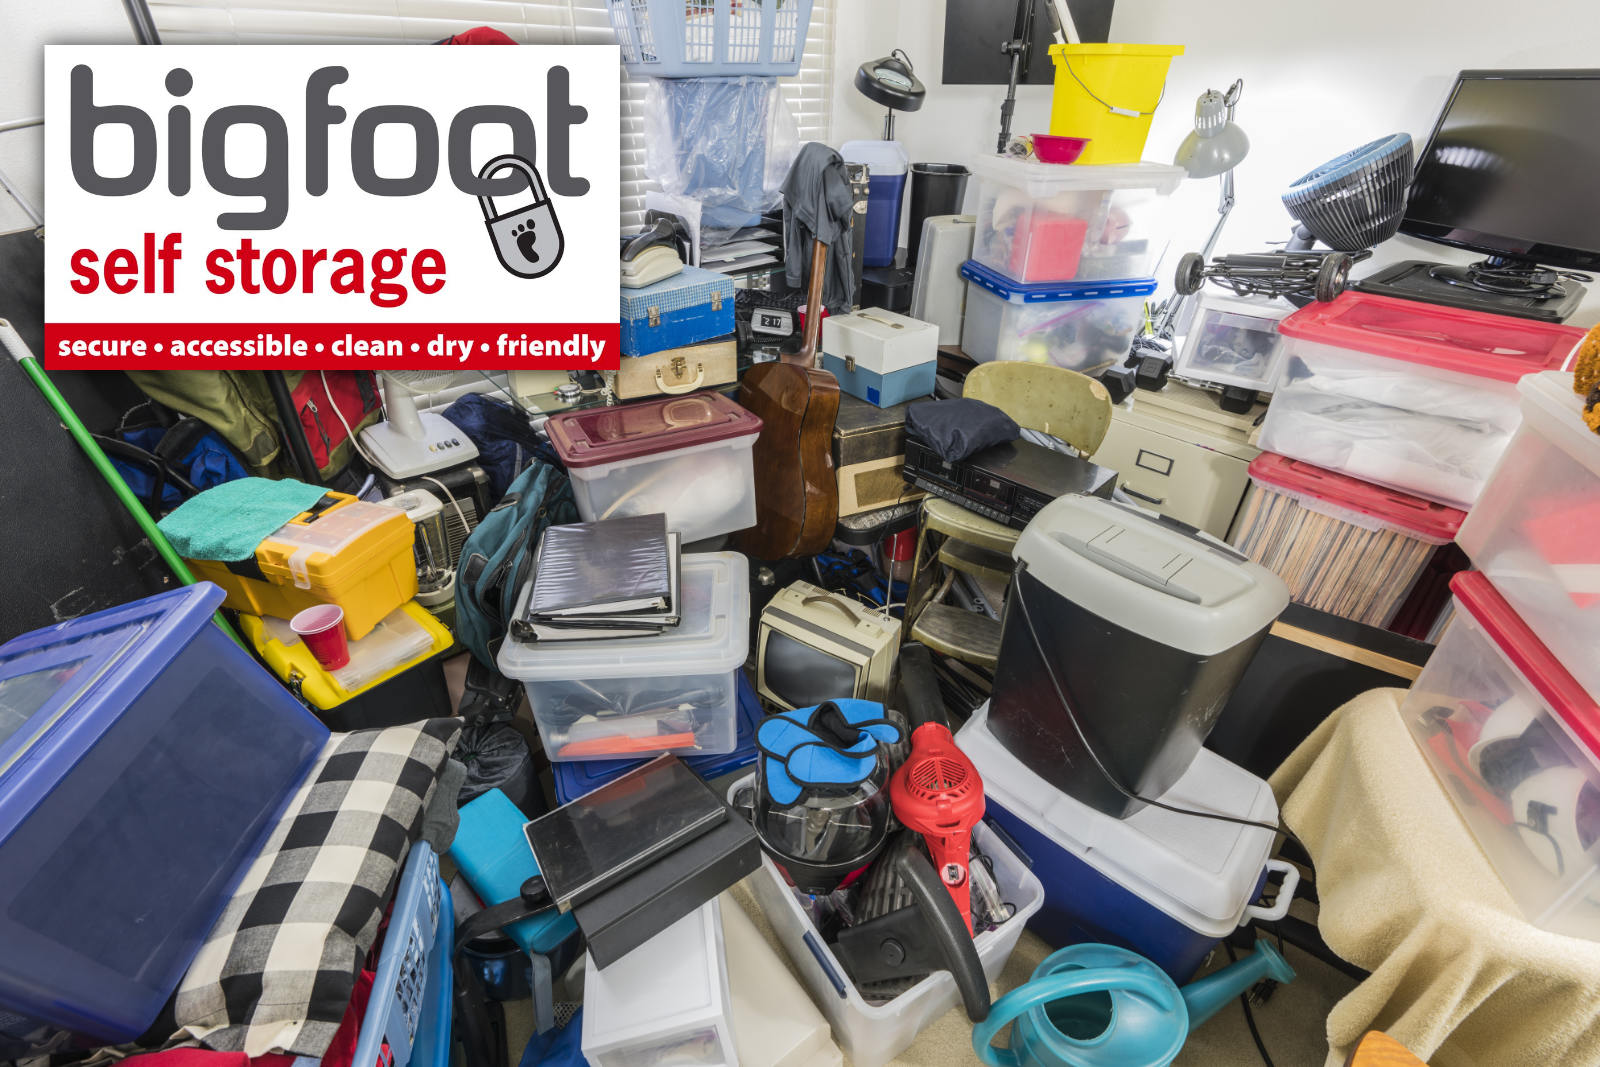 Creative small businesses that can use self storage